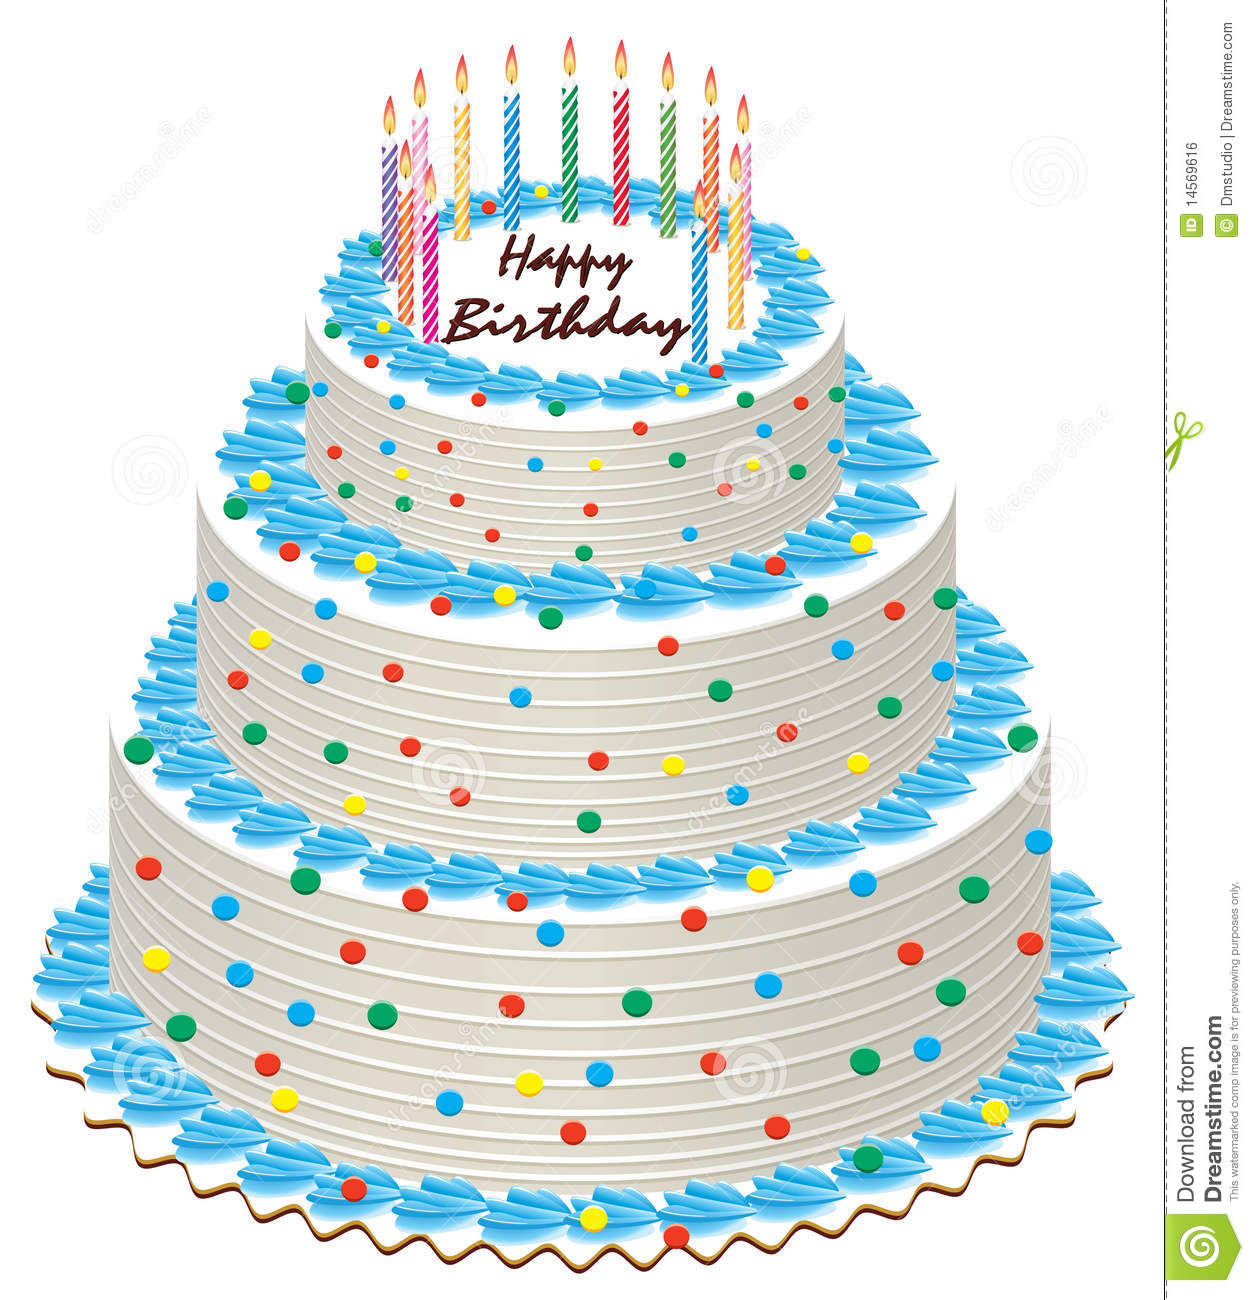 46 Birthday Cake Gallery of Wallpapers | Free Download For Android